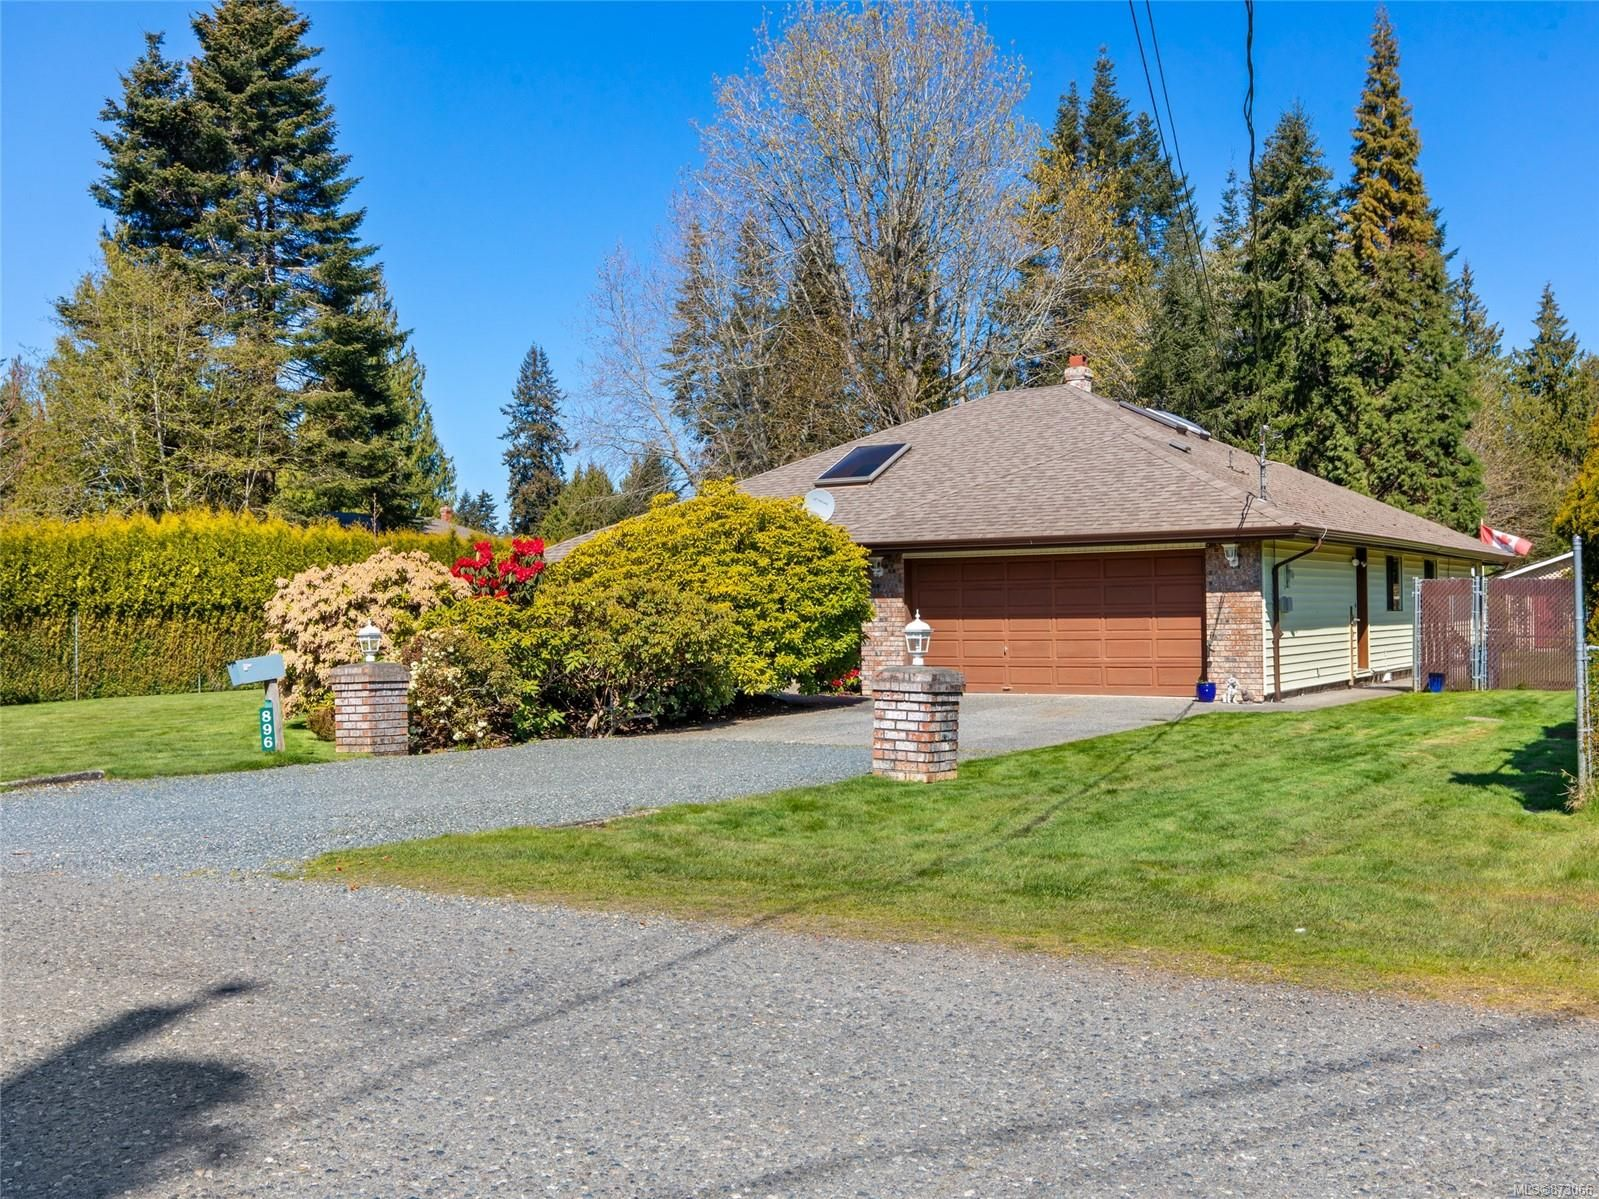 Main Photo: 896 Terrien Way in : PQ Parksville House for sale (Parksville/Qualicum)  : MLS®# 873066